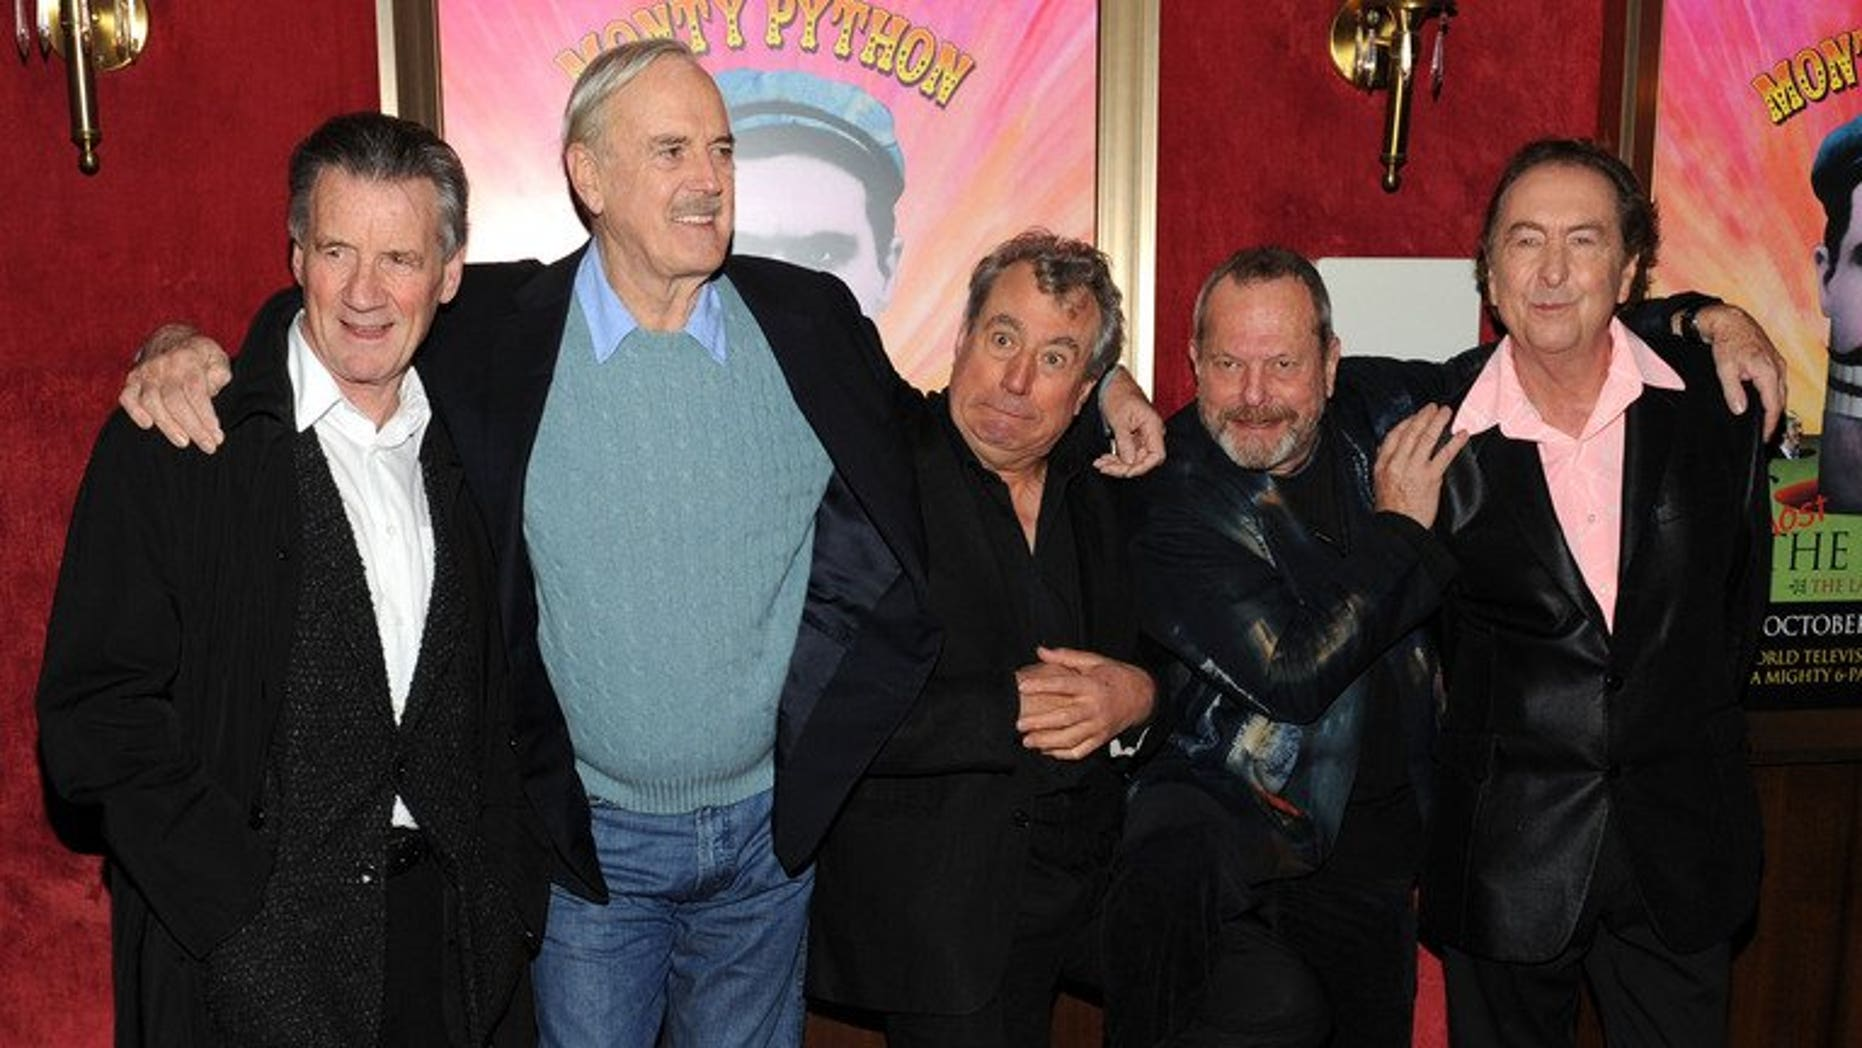 """(From left) Actors Michael Palin, John Cleese, Terry Jones, Terry Gilliam and Eric Idle attend the IFC & BAFTA Monty Python 40th Anniversary event in New York City on October 15, 2009. The producer of the cult film """"Monty Python and the Holy Grail"""" won his battle in Britain's High Court to boost his share of the profits from the hit spin-off musical, """"Spamalot""""."""